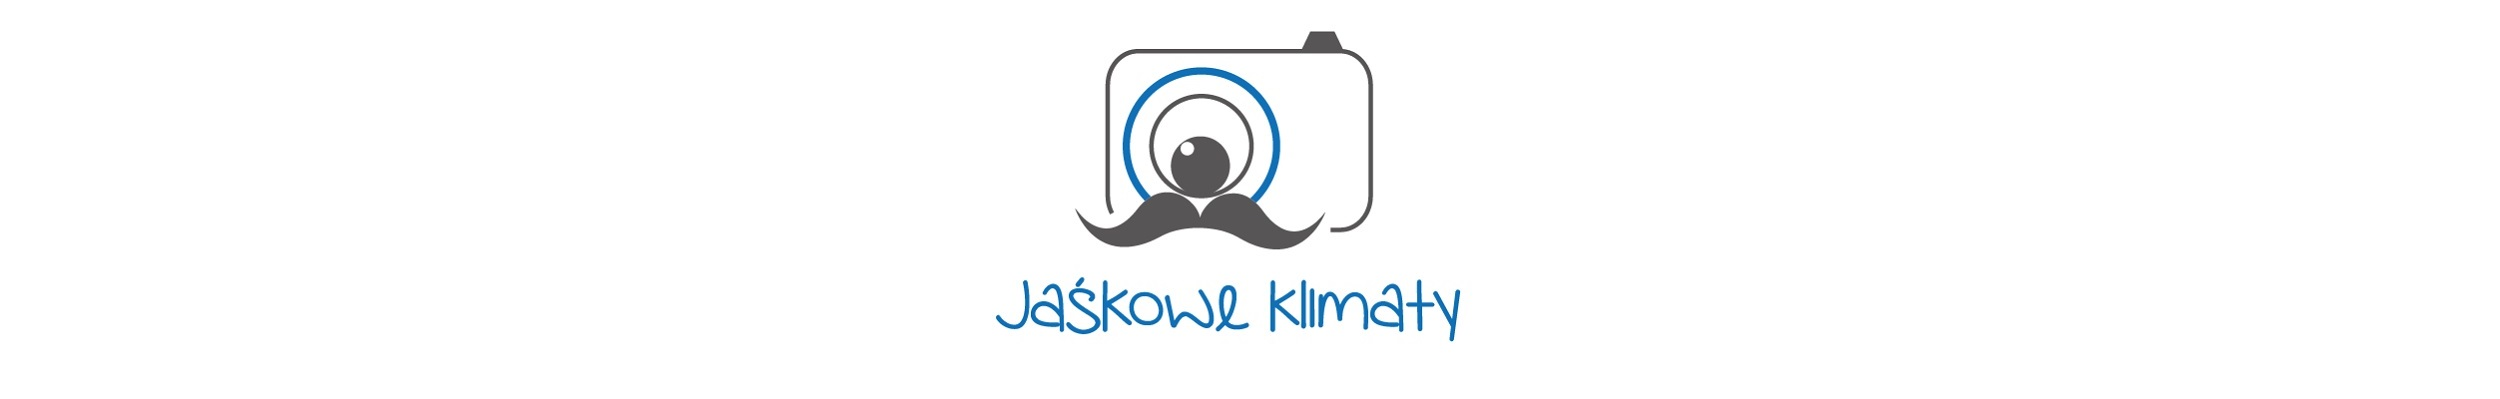 Jaśkowe klimaty-Blog rodzicielsko-lifestylowy